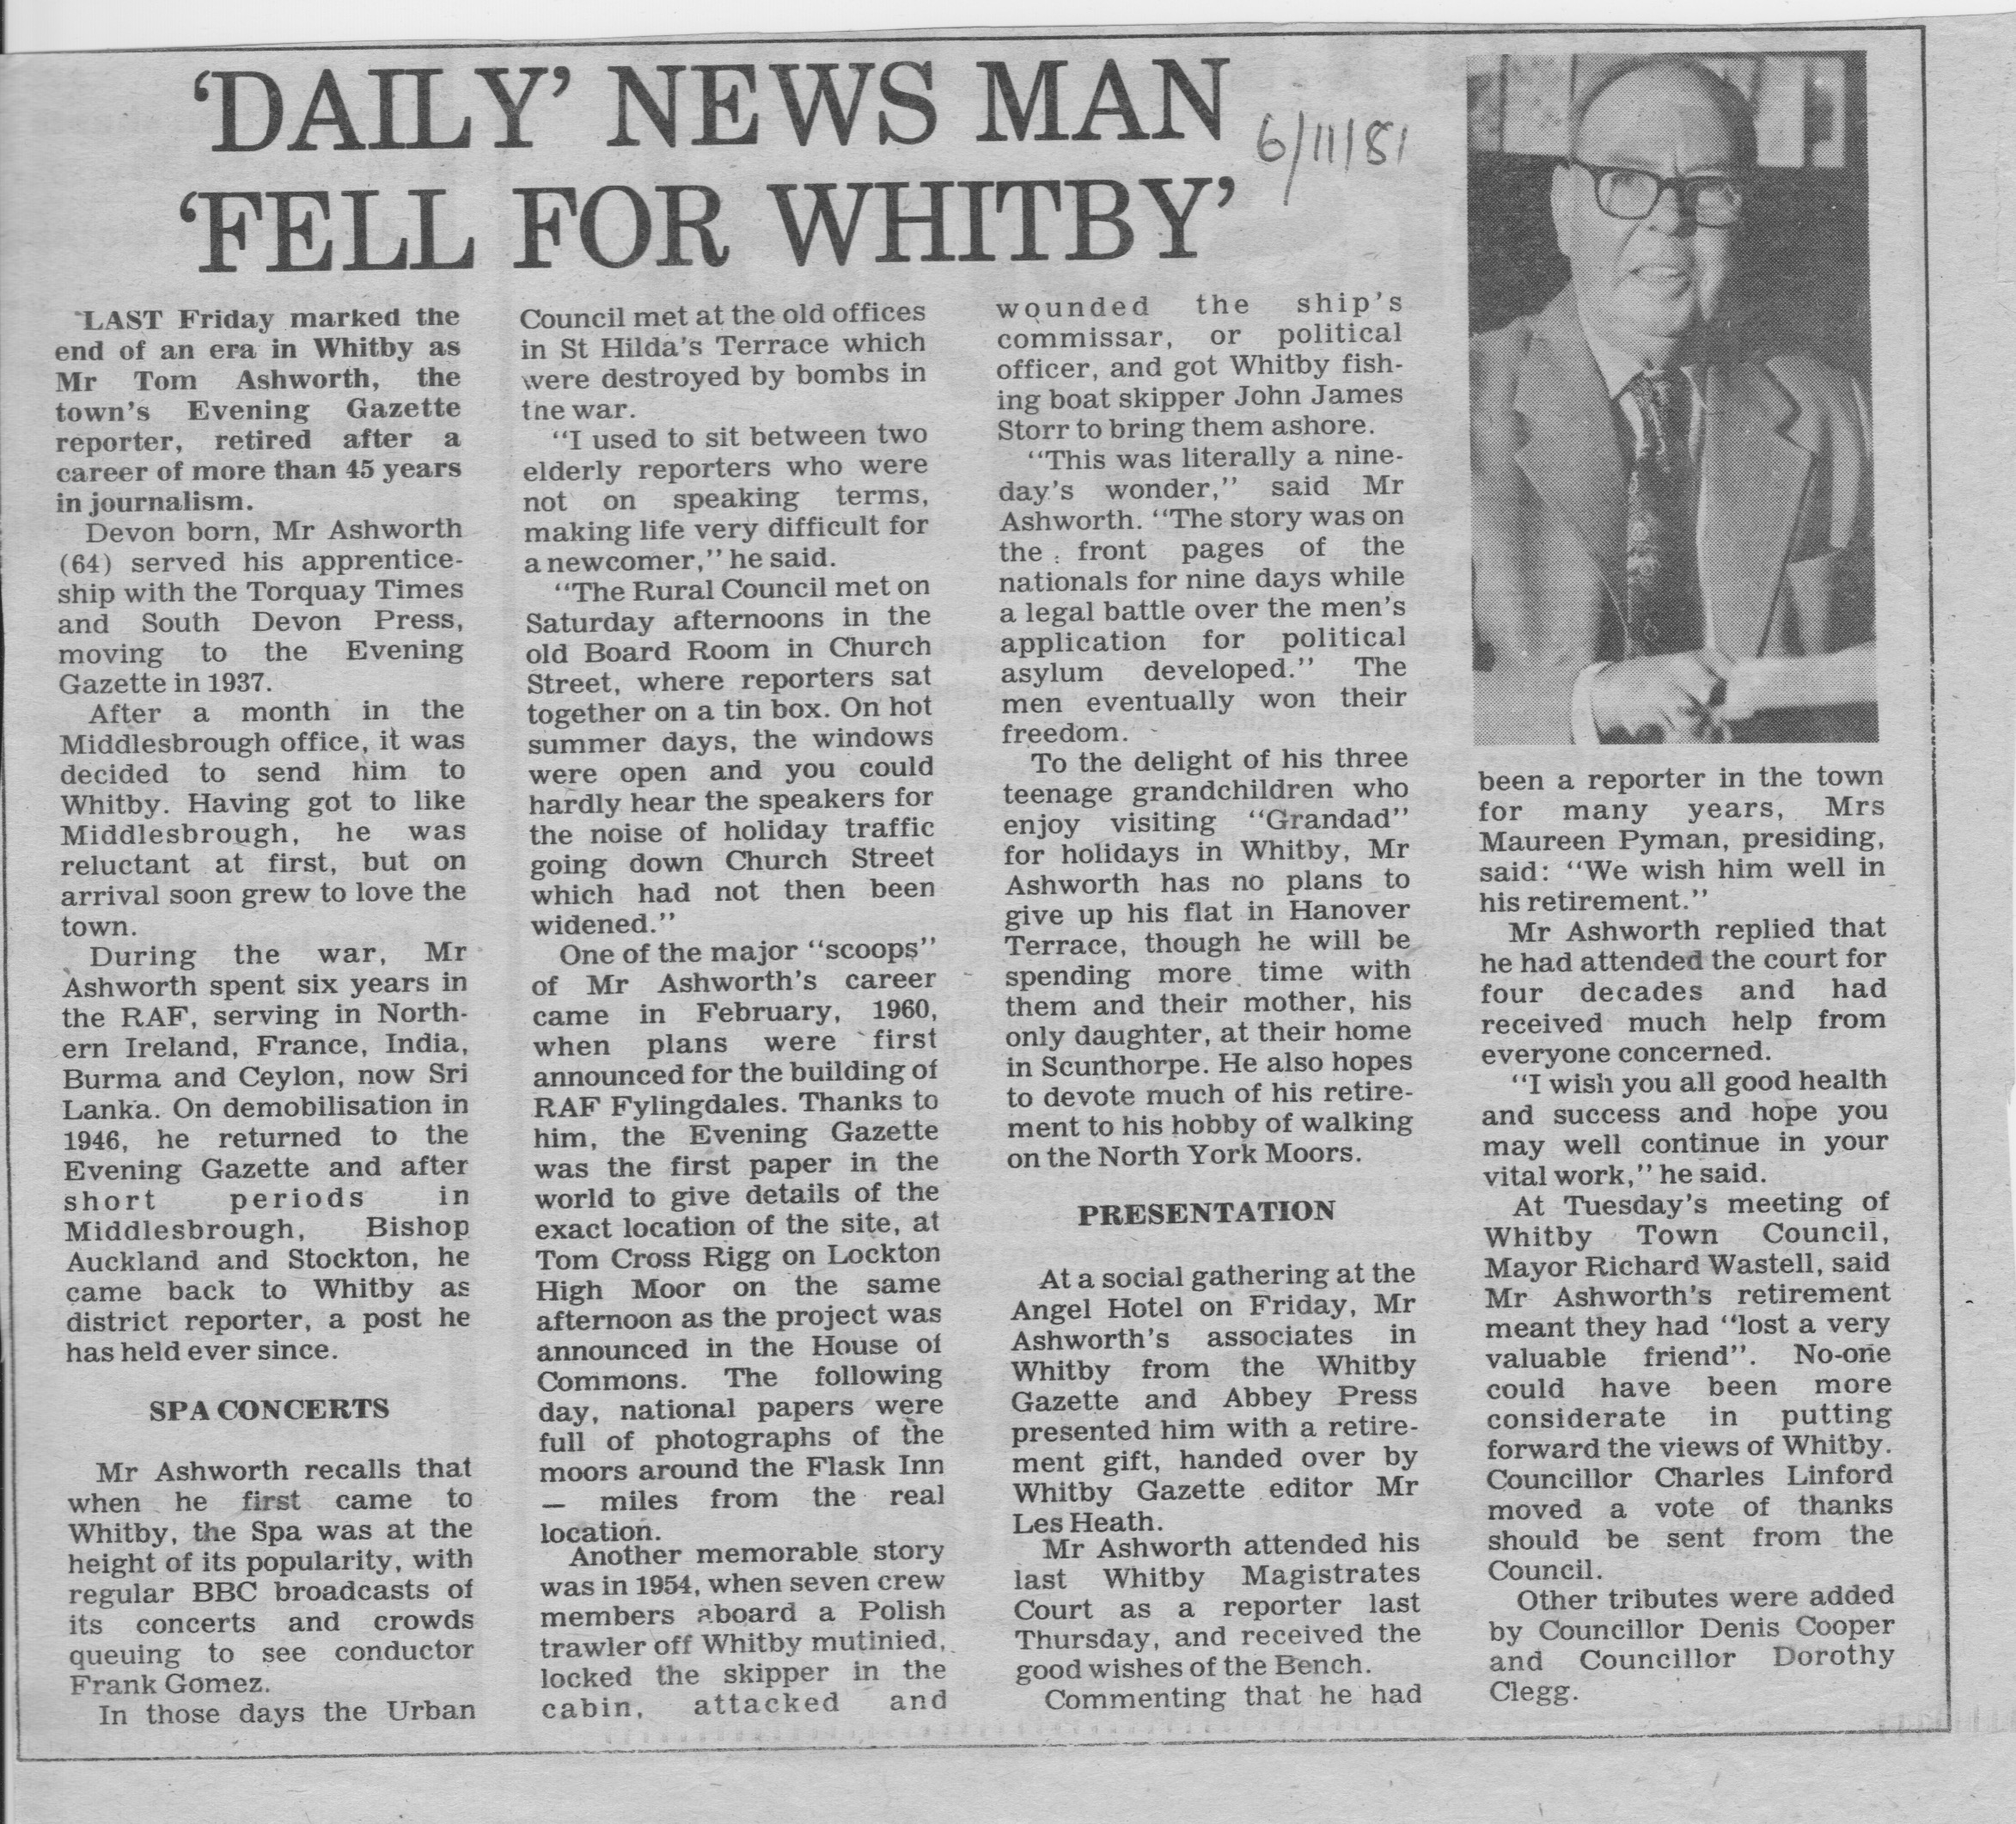 Tom retired in October 1981 after serving as Whitby reporter for 44 years